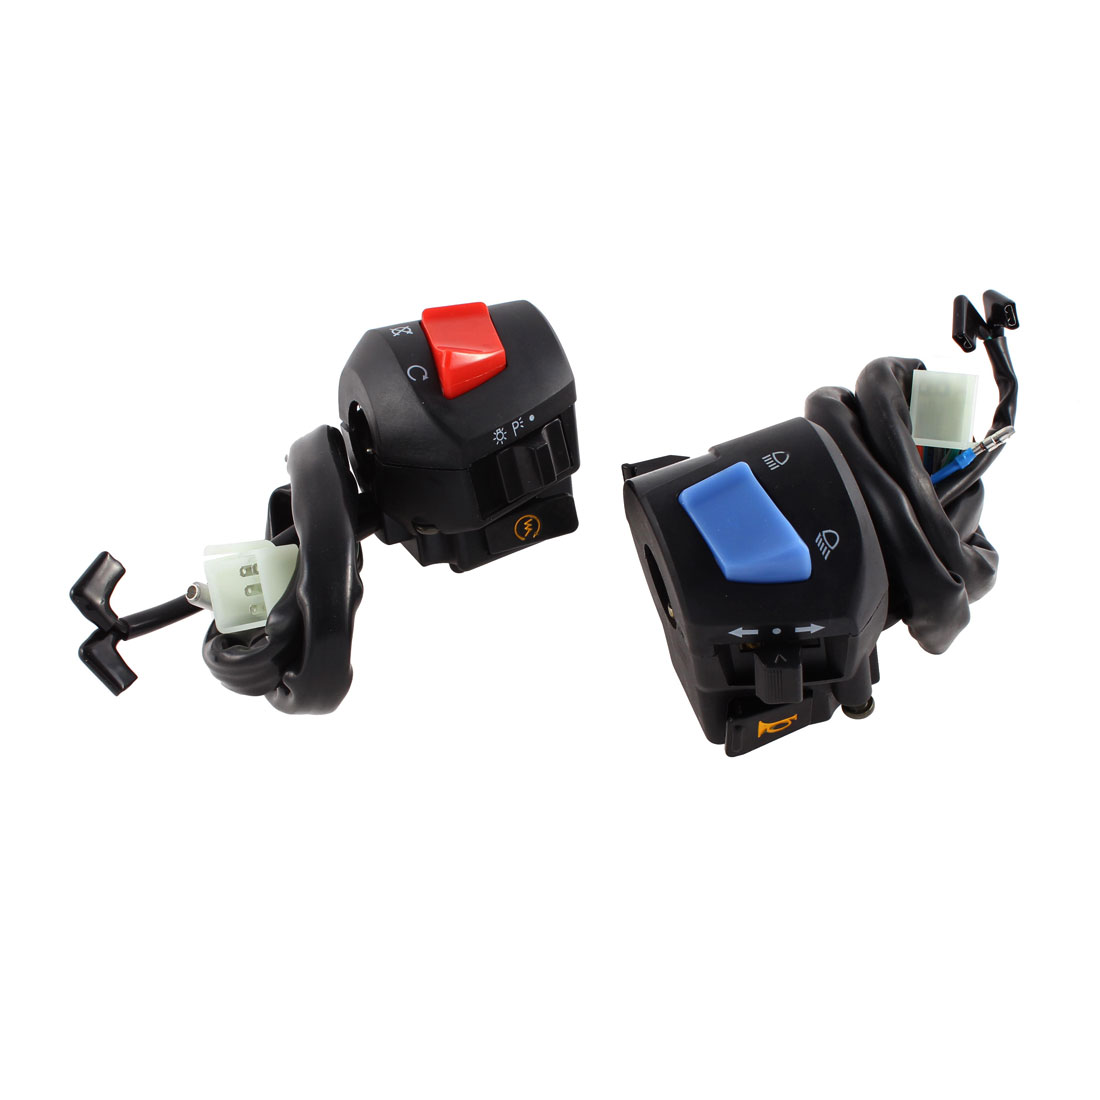 2 in 1 Turn Signal Light Combination Switch Controller for Motorcycle FXD